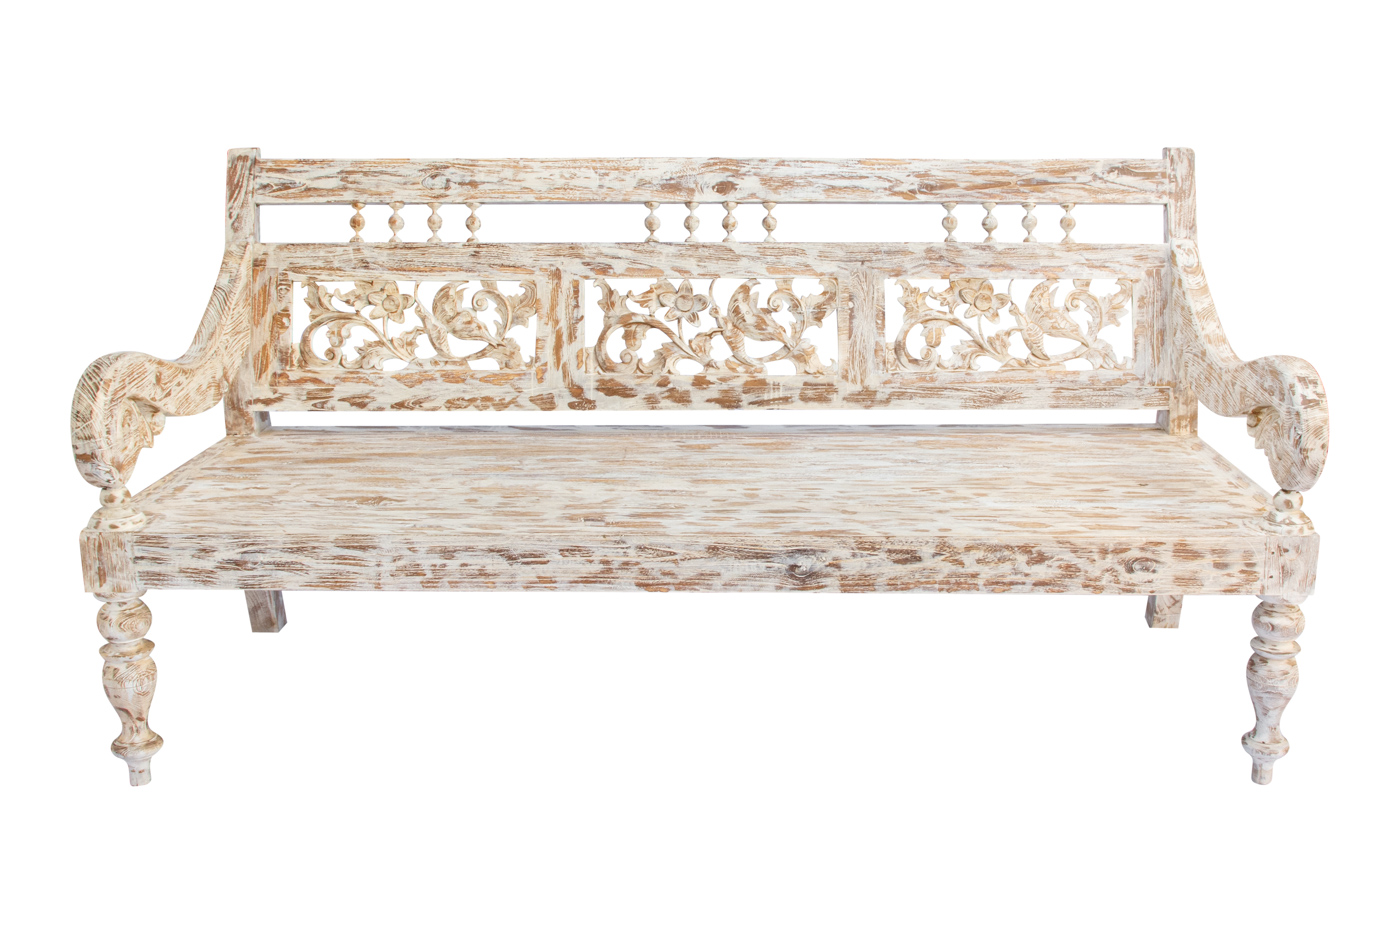 Balinese whitewash carved bench, 102 Cm